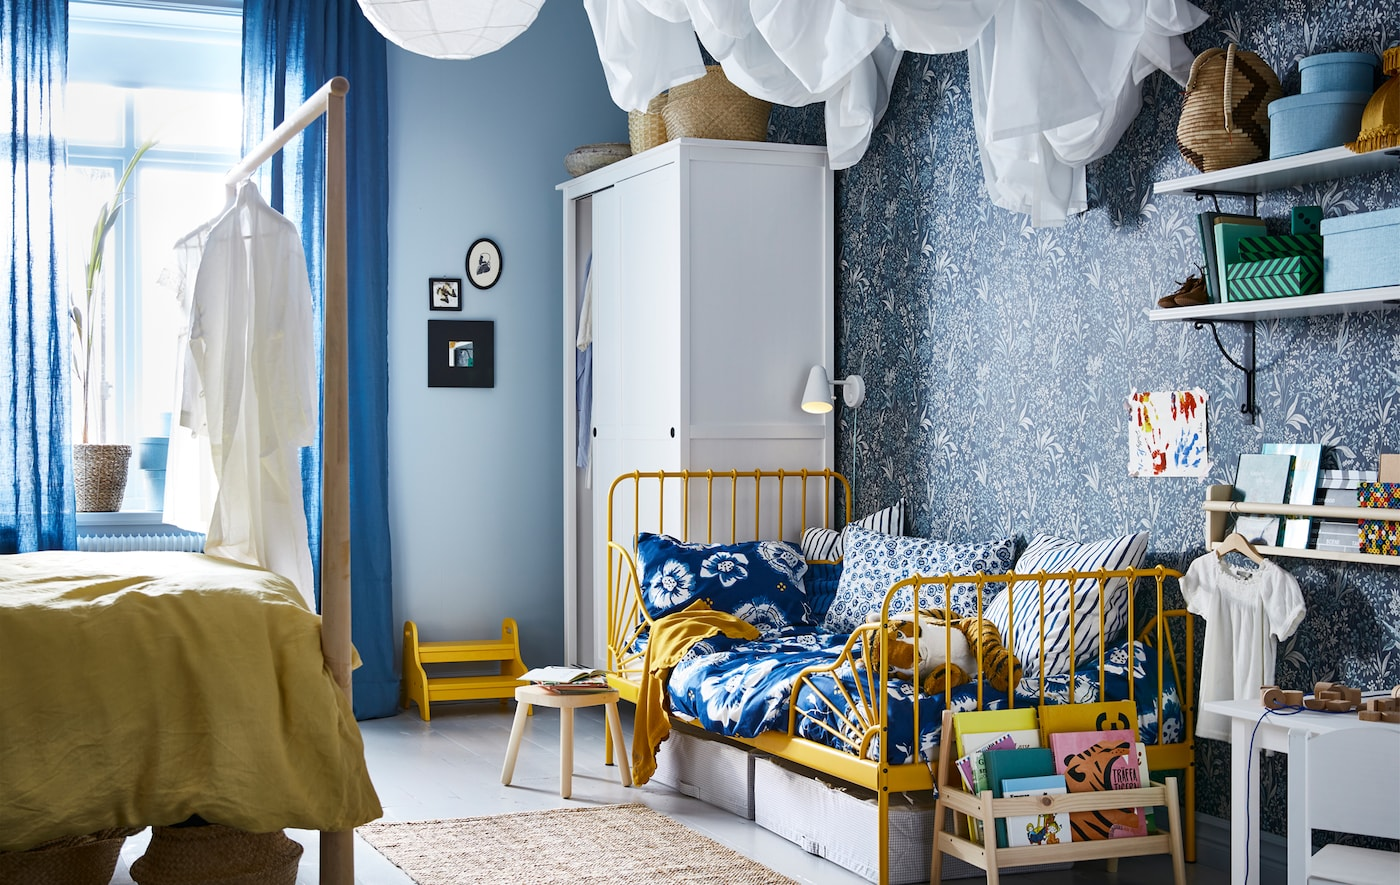 A bedroom with blue and yellow colour scheme, with an adult bed on one side and child's bed on the other side.